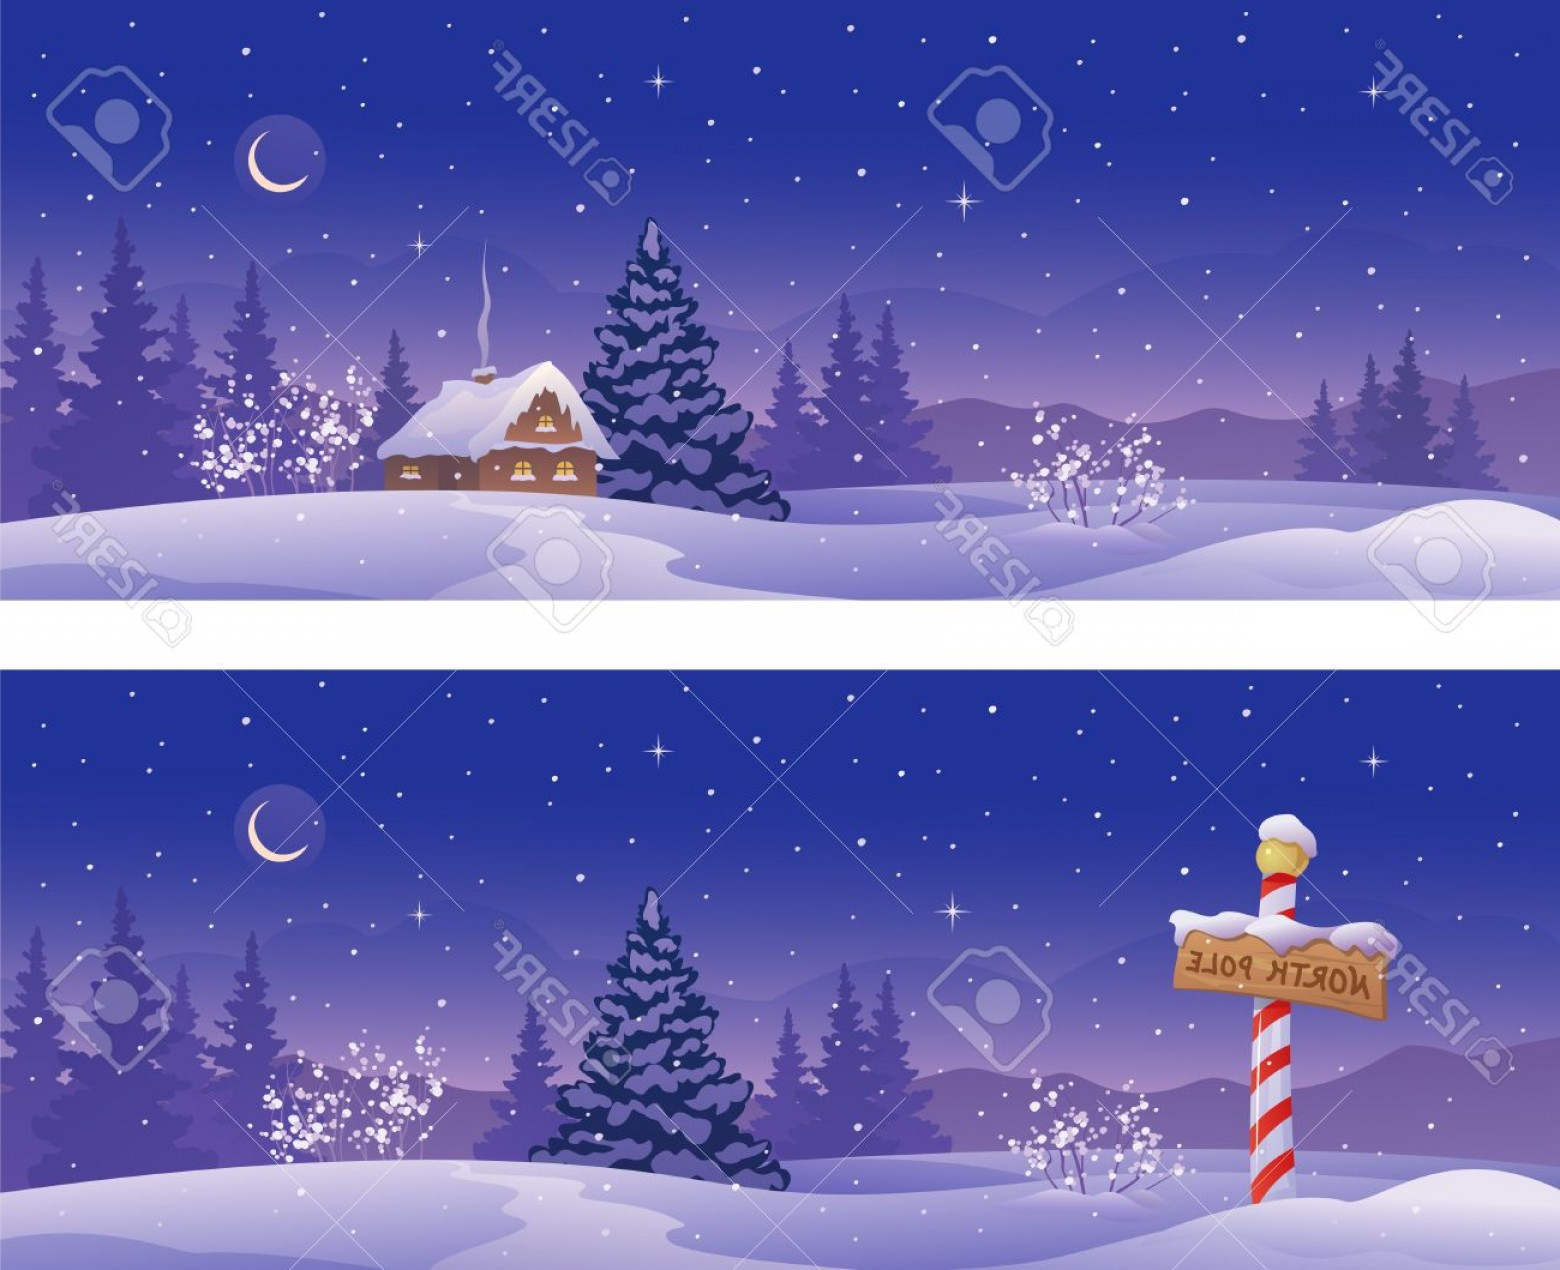 North Pole Landscape Vector: Photostock Vector Vector Illustration Of Christmas Night Banners With A North Pole Sign And Snow Covered House